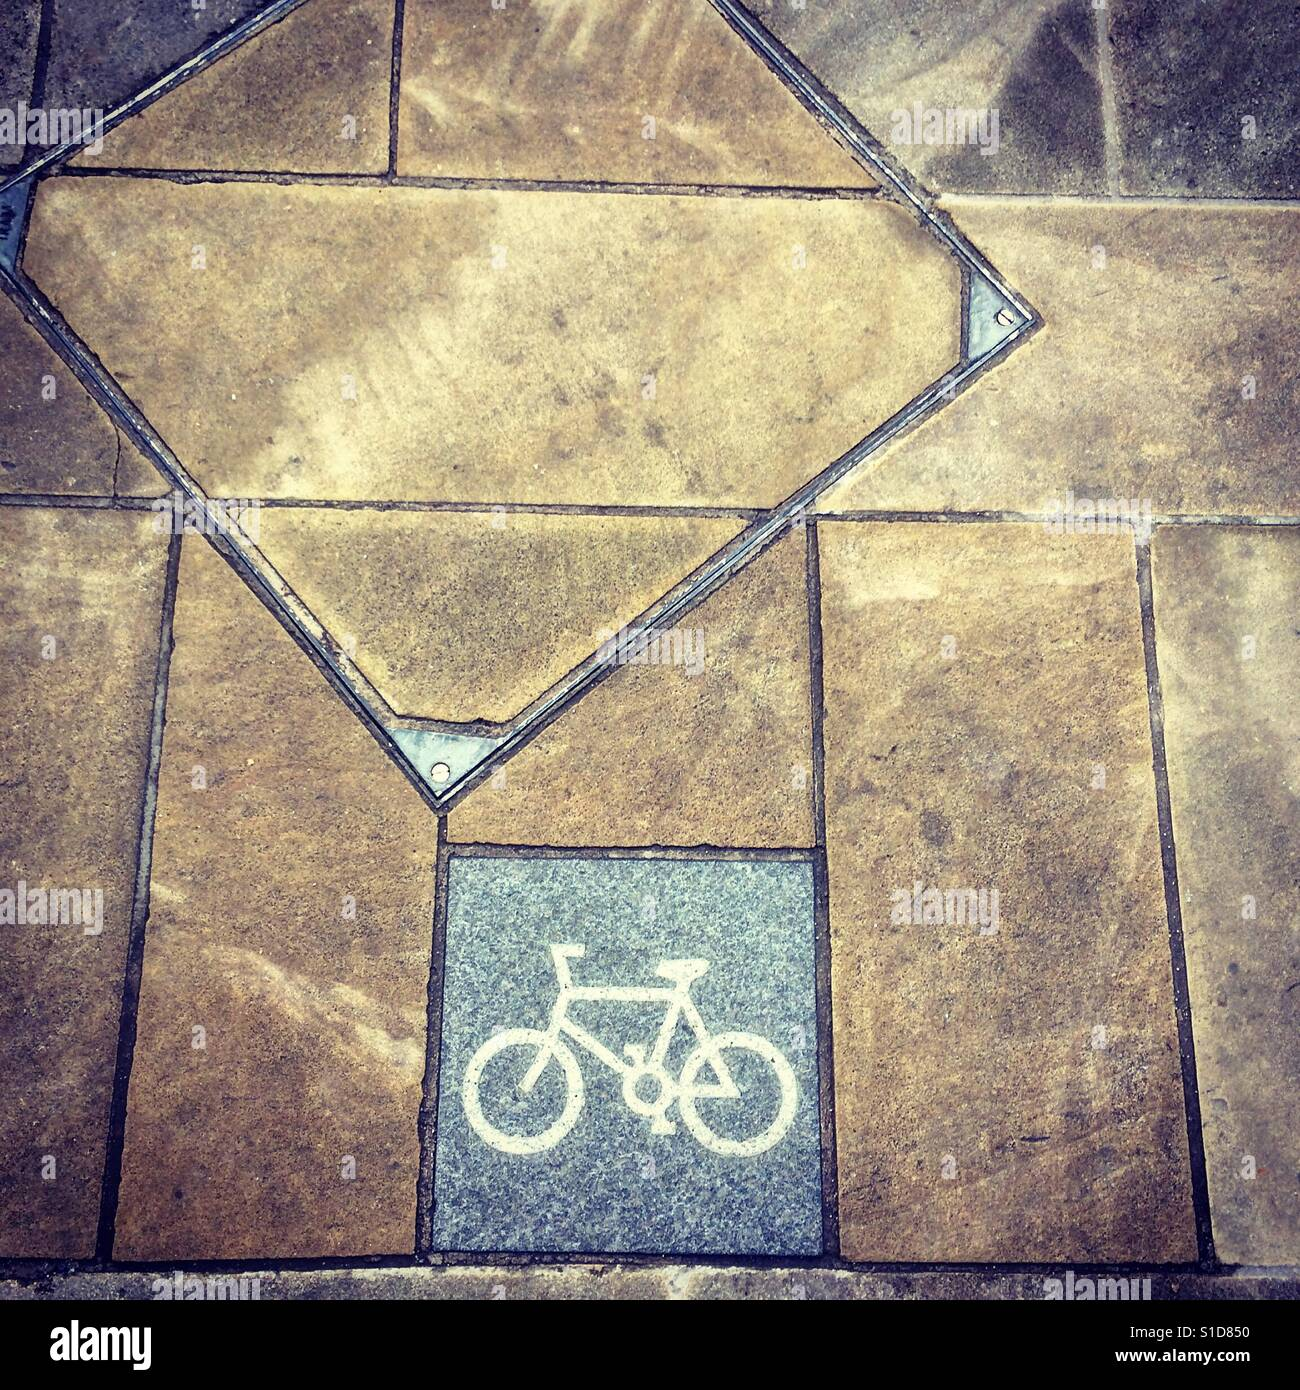 Cycle path in city - Stock Image